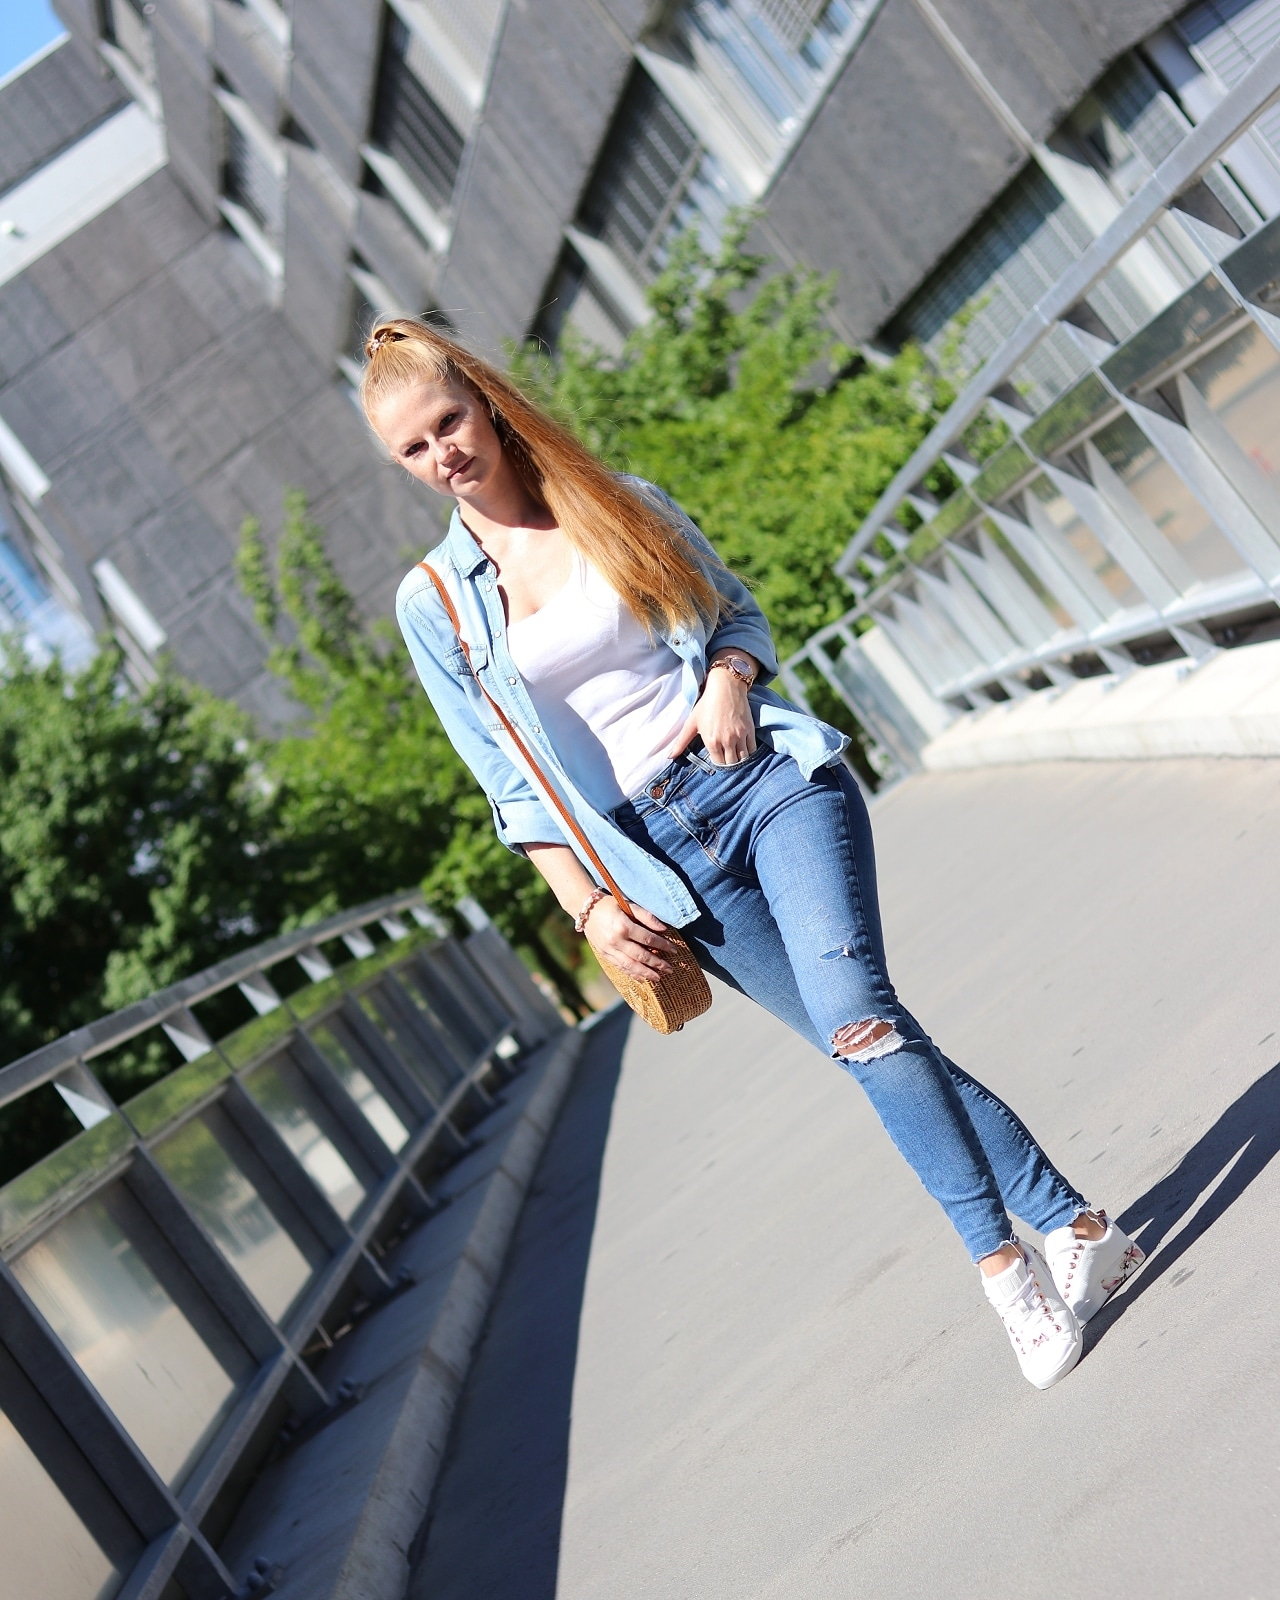 fashion blogger, fashionschuh.de onlineshop, florale prints, fotoshooting in hamburg, high waist jeans, jeanshemd, lässiger denim look, roségold, schuhe online kaufen, ted baker, top mit spitze, weiße sneaker,